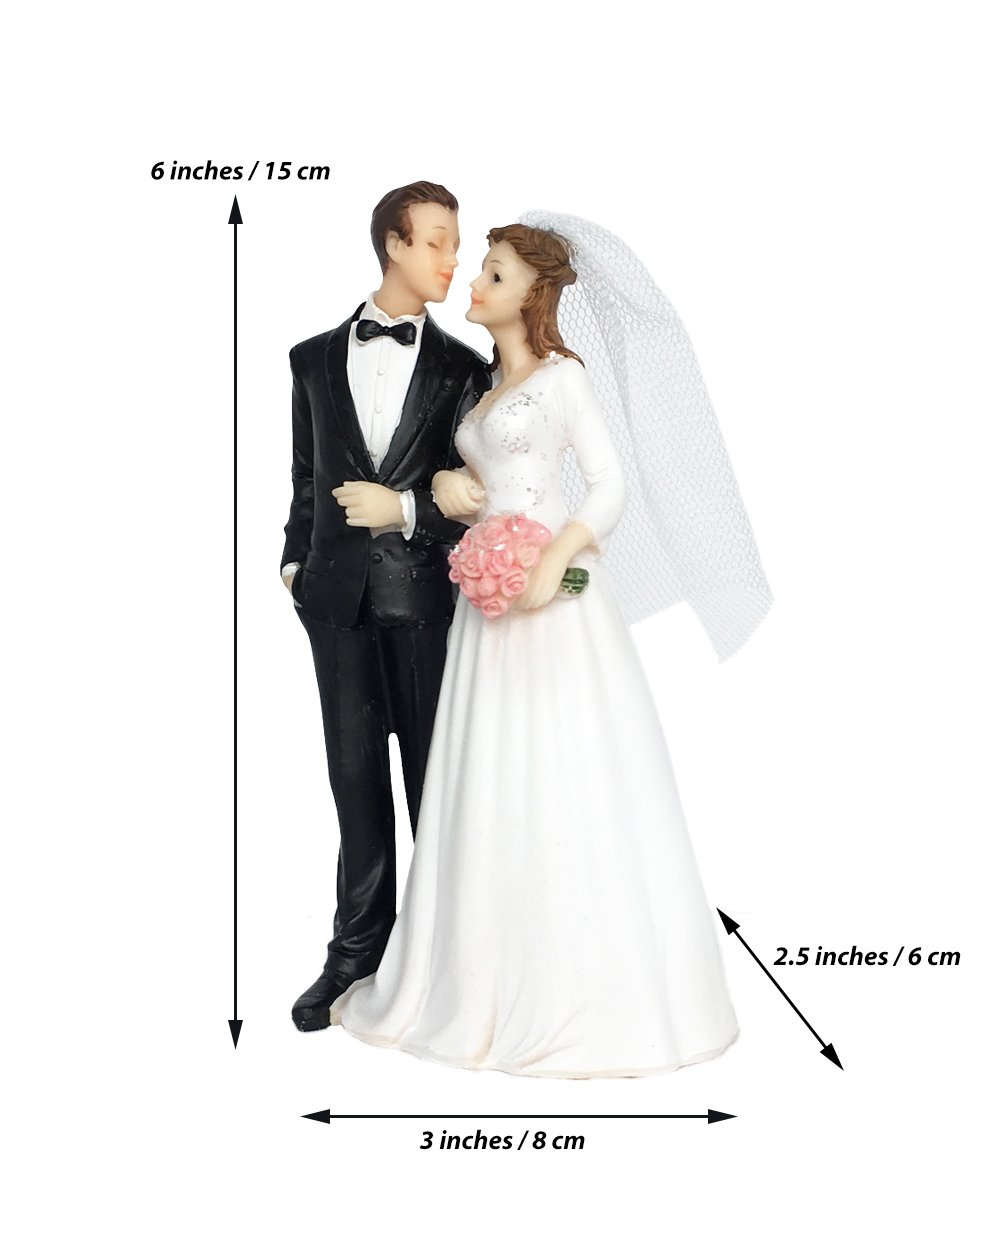 Wedding Cake Topper Funny & Romantic Groom And Bride holding hands with flowers Figurine | Toppers For Wedding Cakes Decoration | Hand Painted & Unique Figurines by zy retail (Image #4)